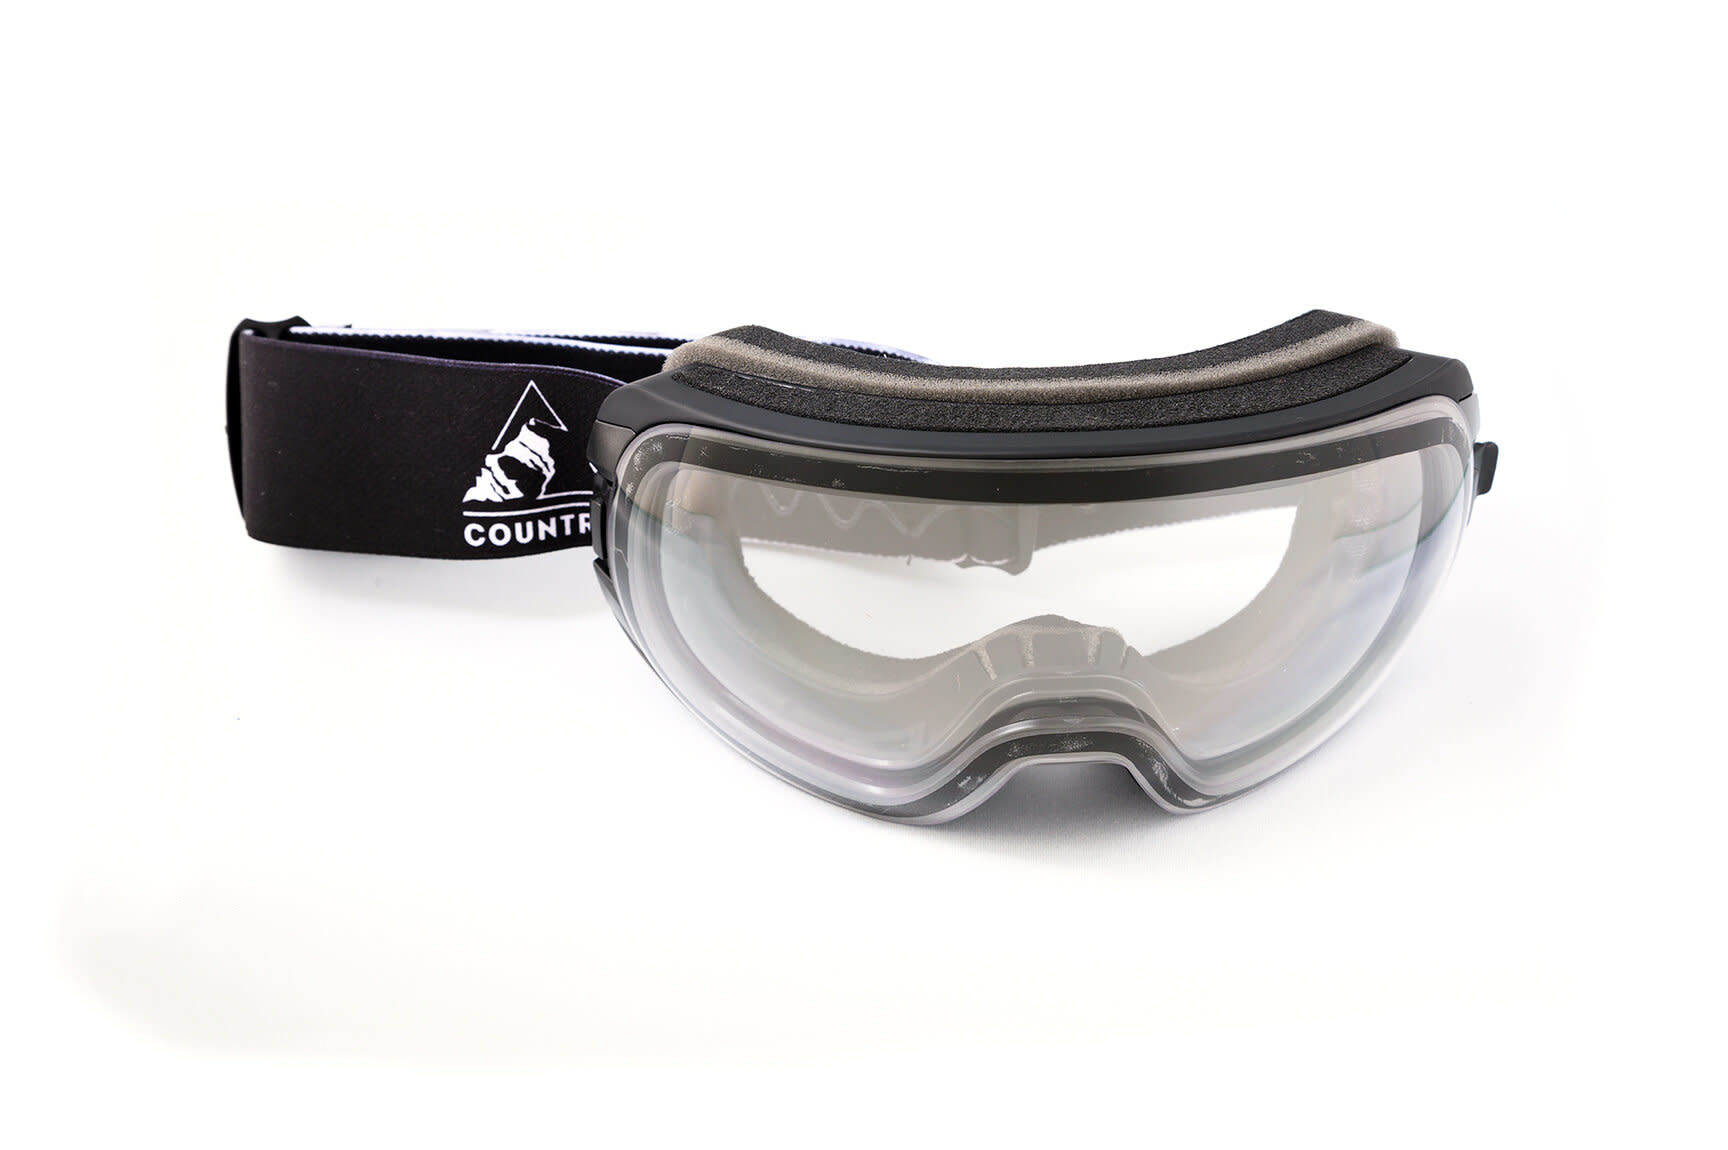 Country Country Blizzard Spherical Snow Goggle